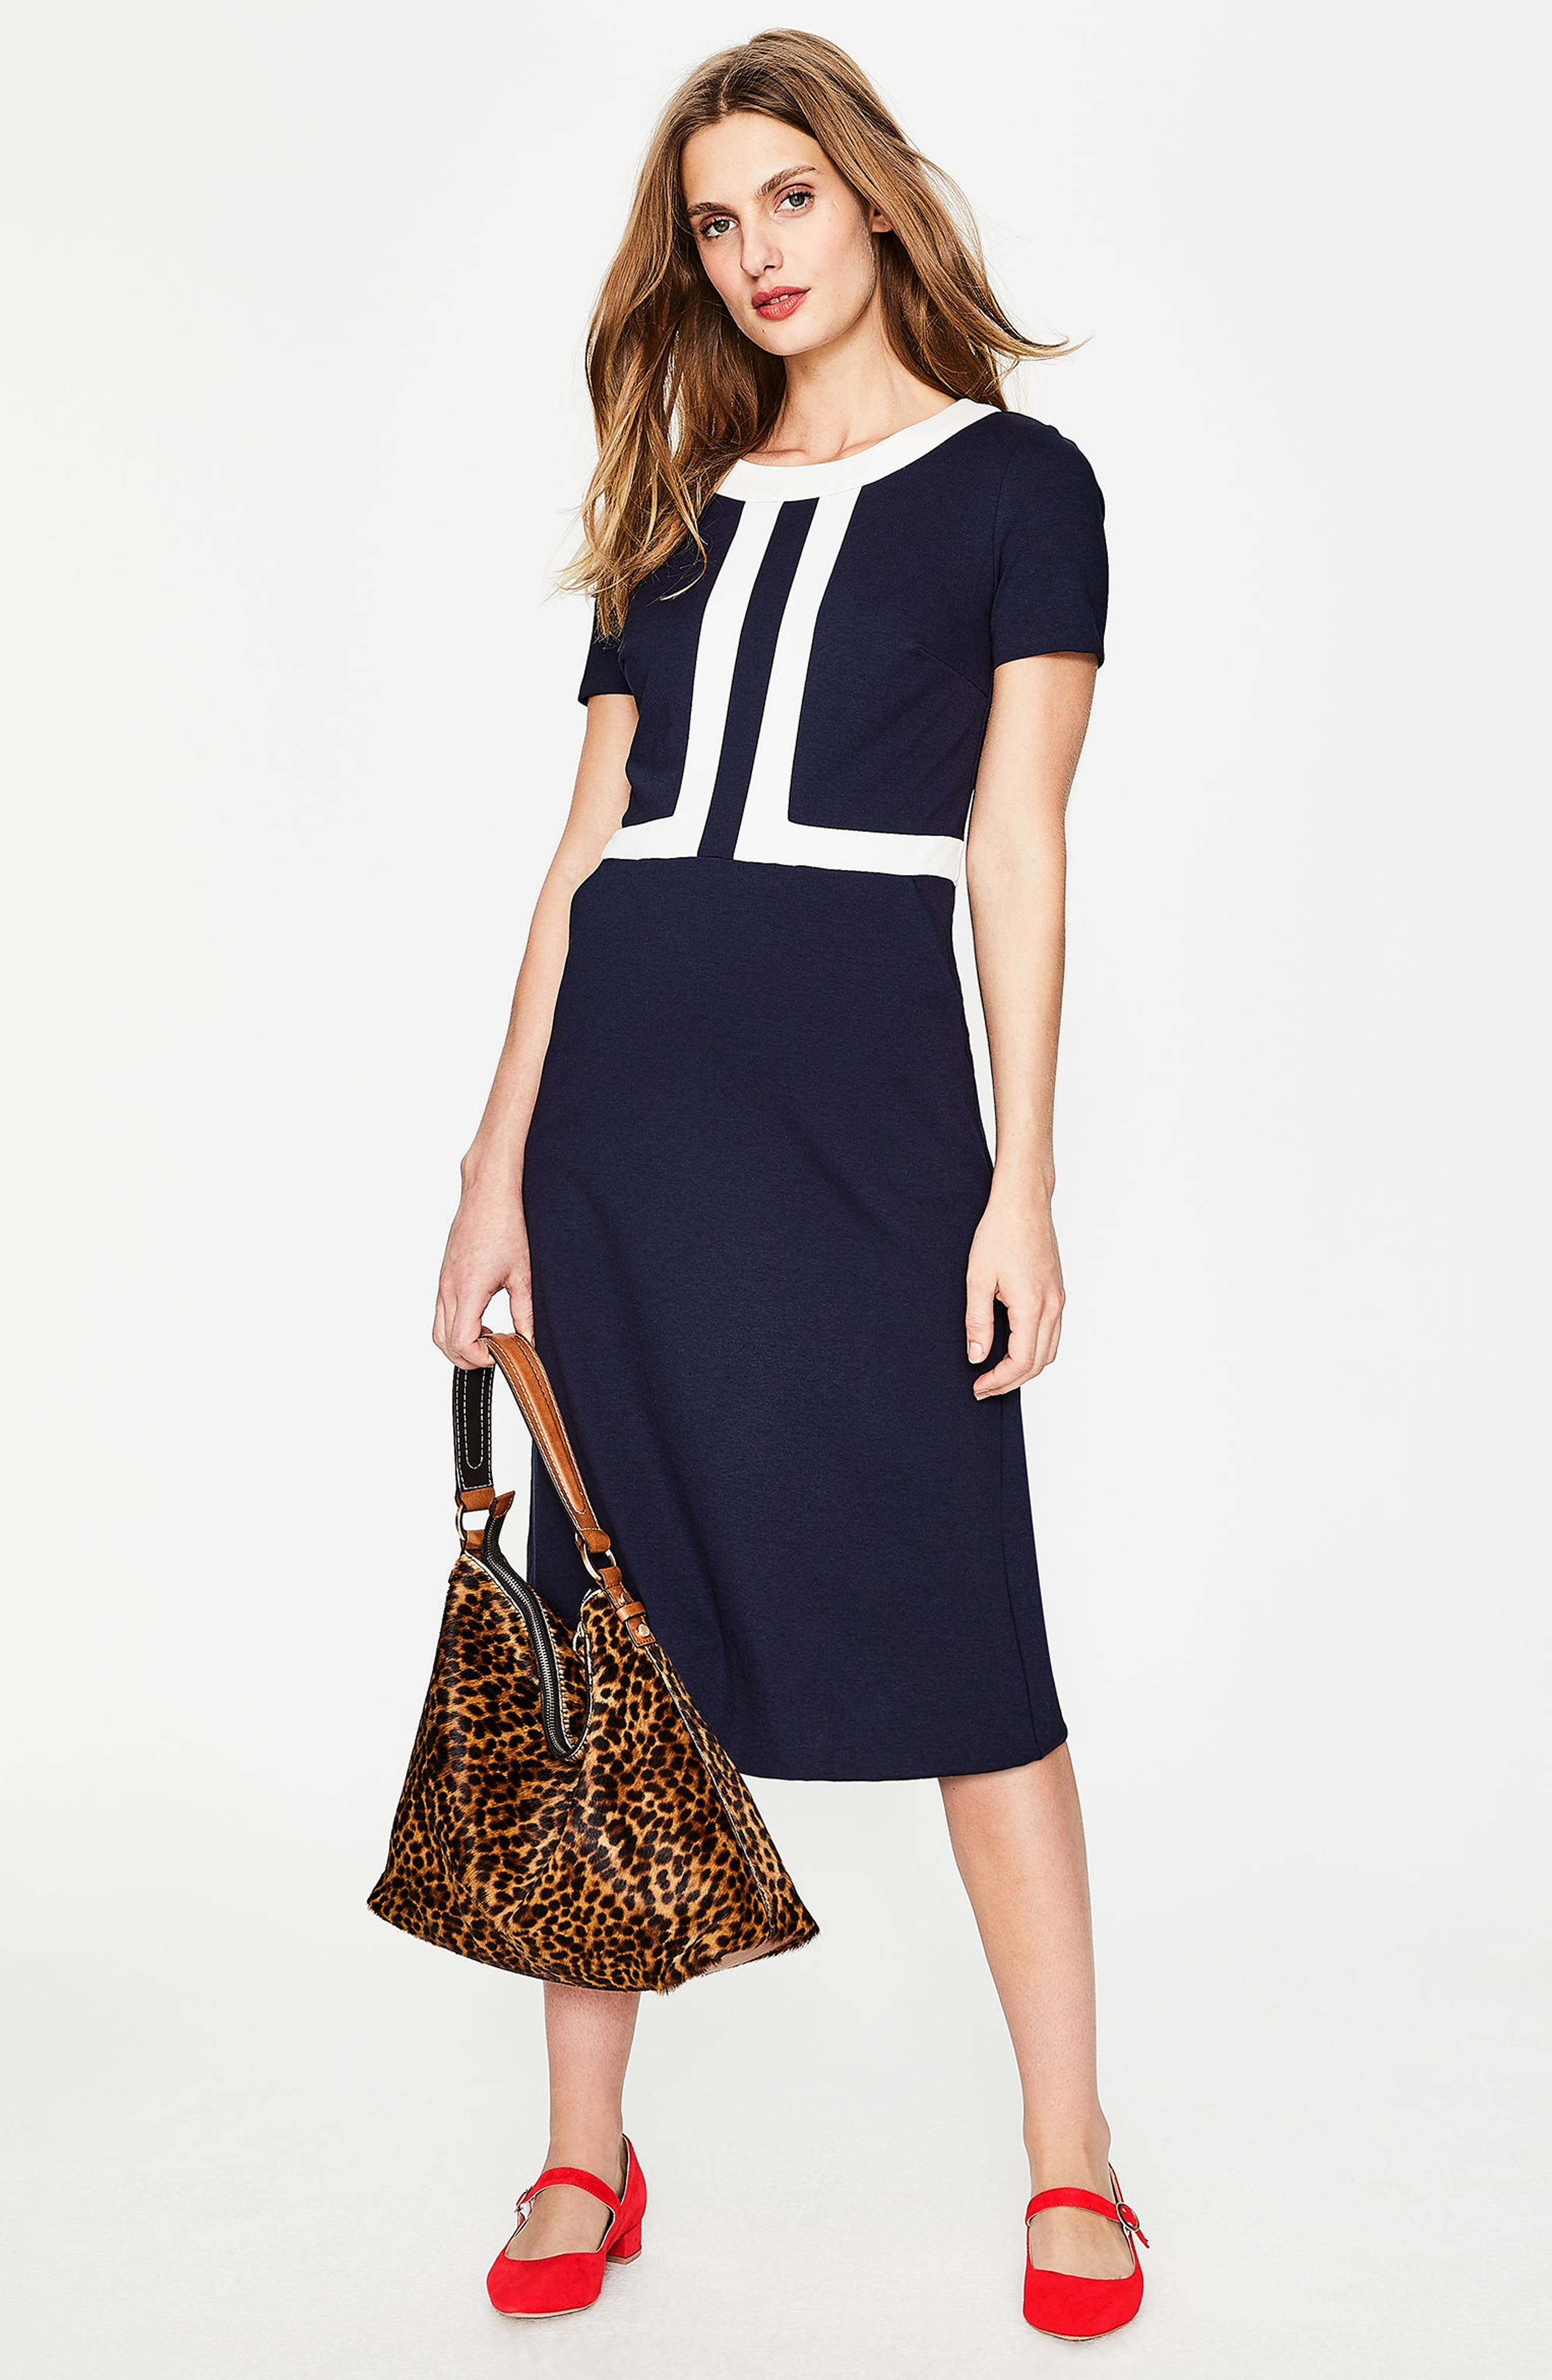 Colorblock A-Line Dress,                             Alternate thumbnail 2, color,                             Navy/ Ivory